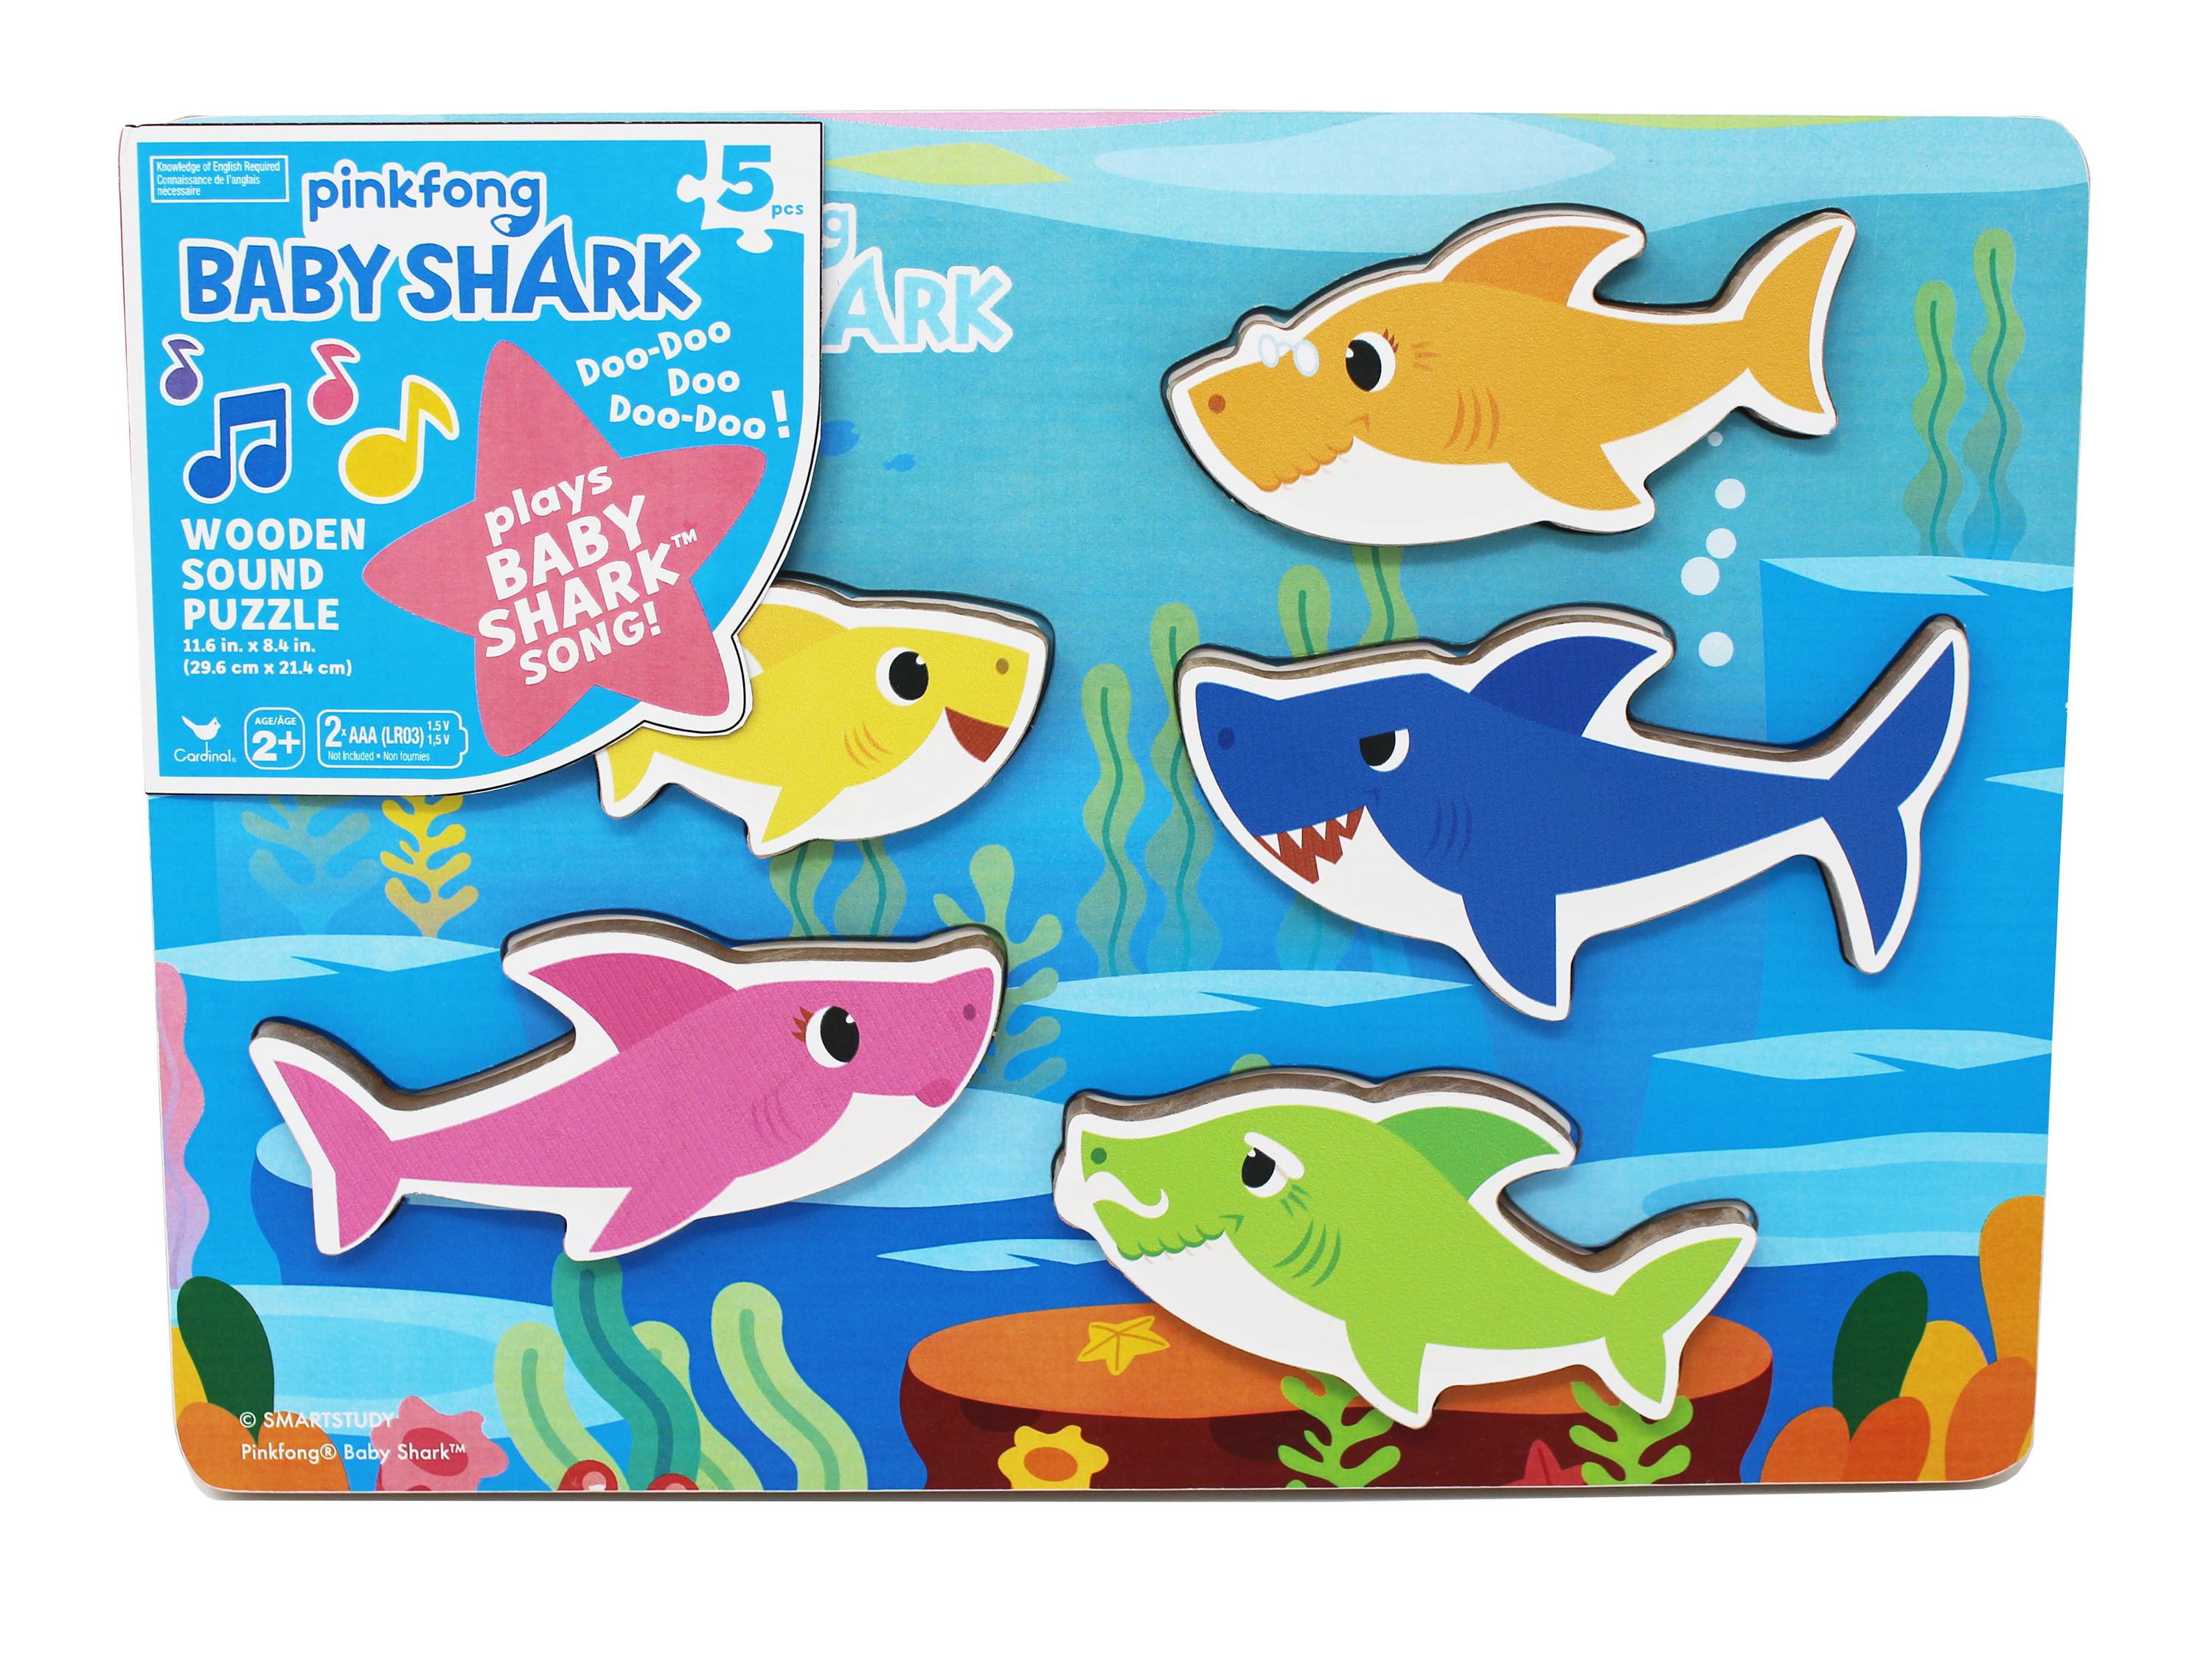 Pinkfong Baby Shark Chunky Wood Sound Puzzle Plays Baby Shark Song by Spin Master Ltd